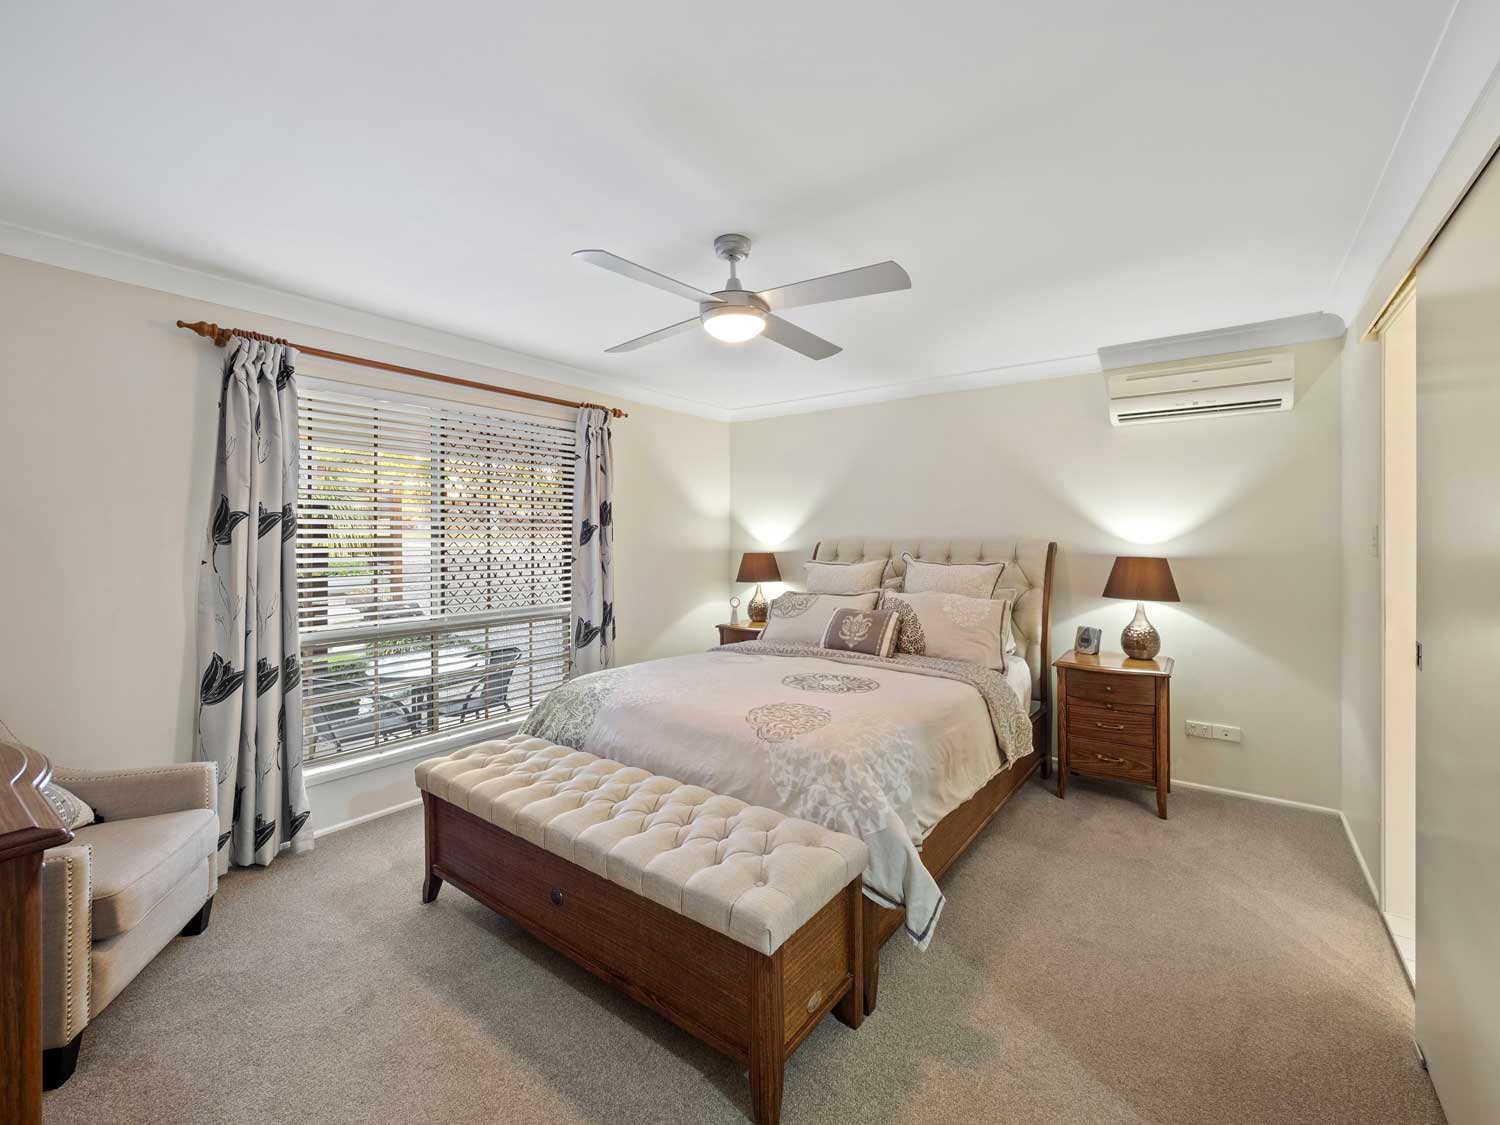 The master bedroom - photographing a home for sale at Kuraby